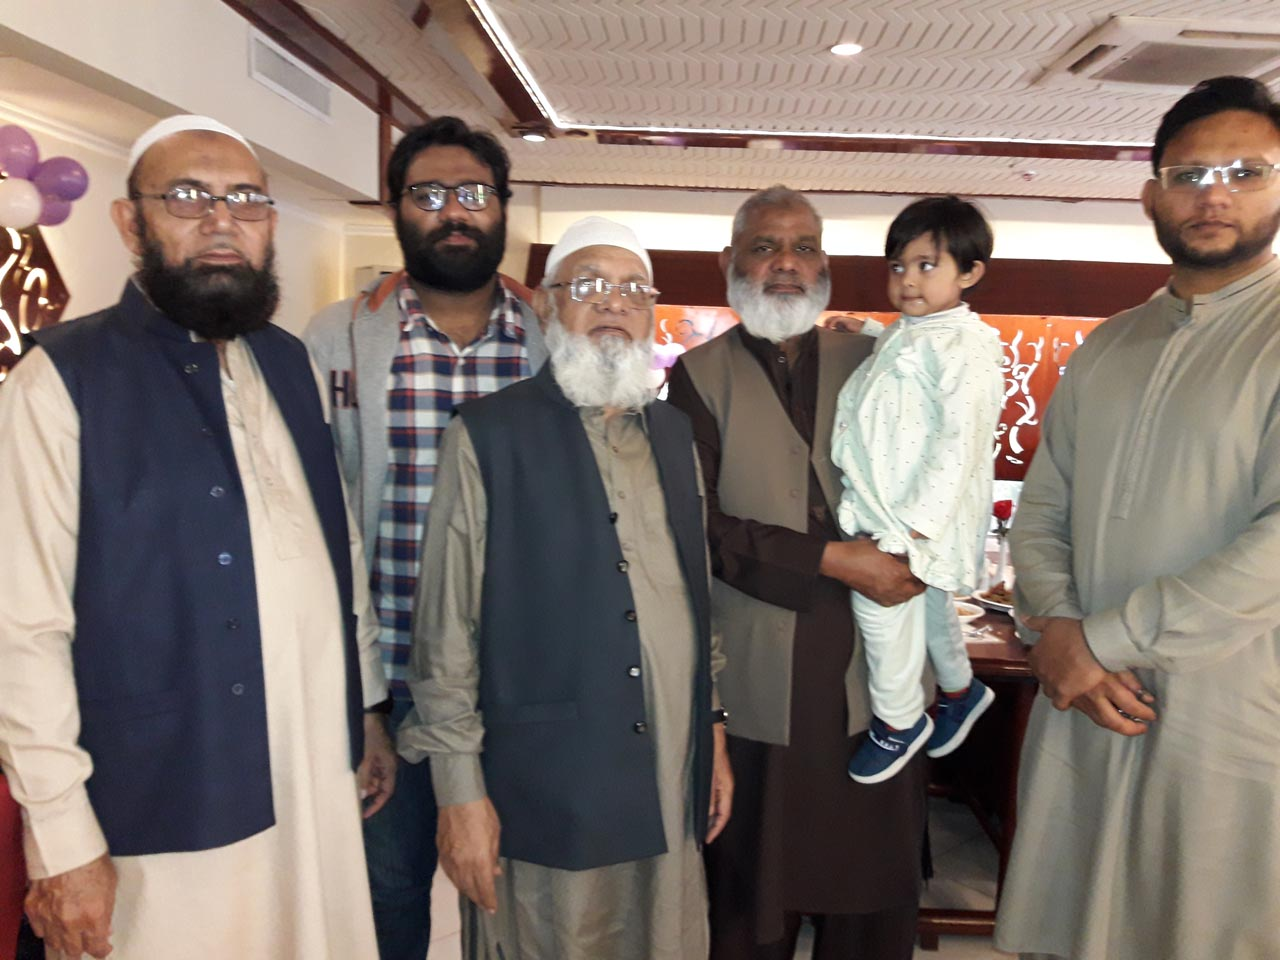 Ilyas Khan, Munis Quraishi, Atauddin Quraishi, Khalil Quraishi with his grandson and Waqas Quraishi